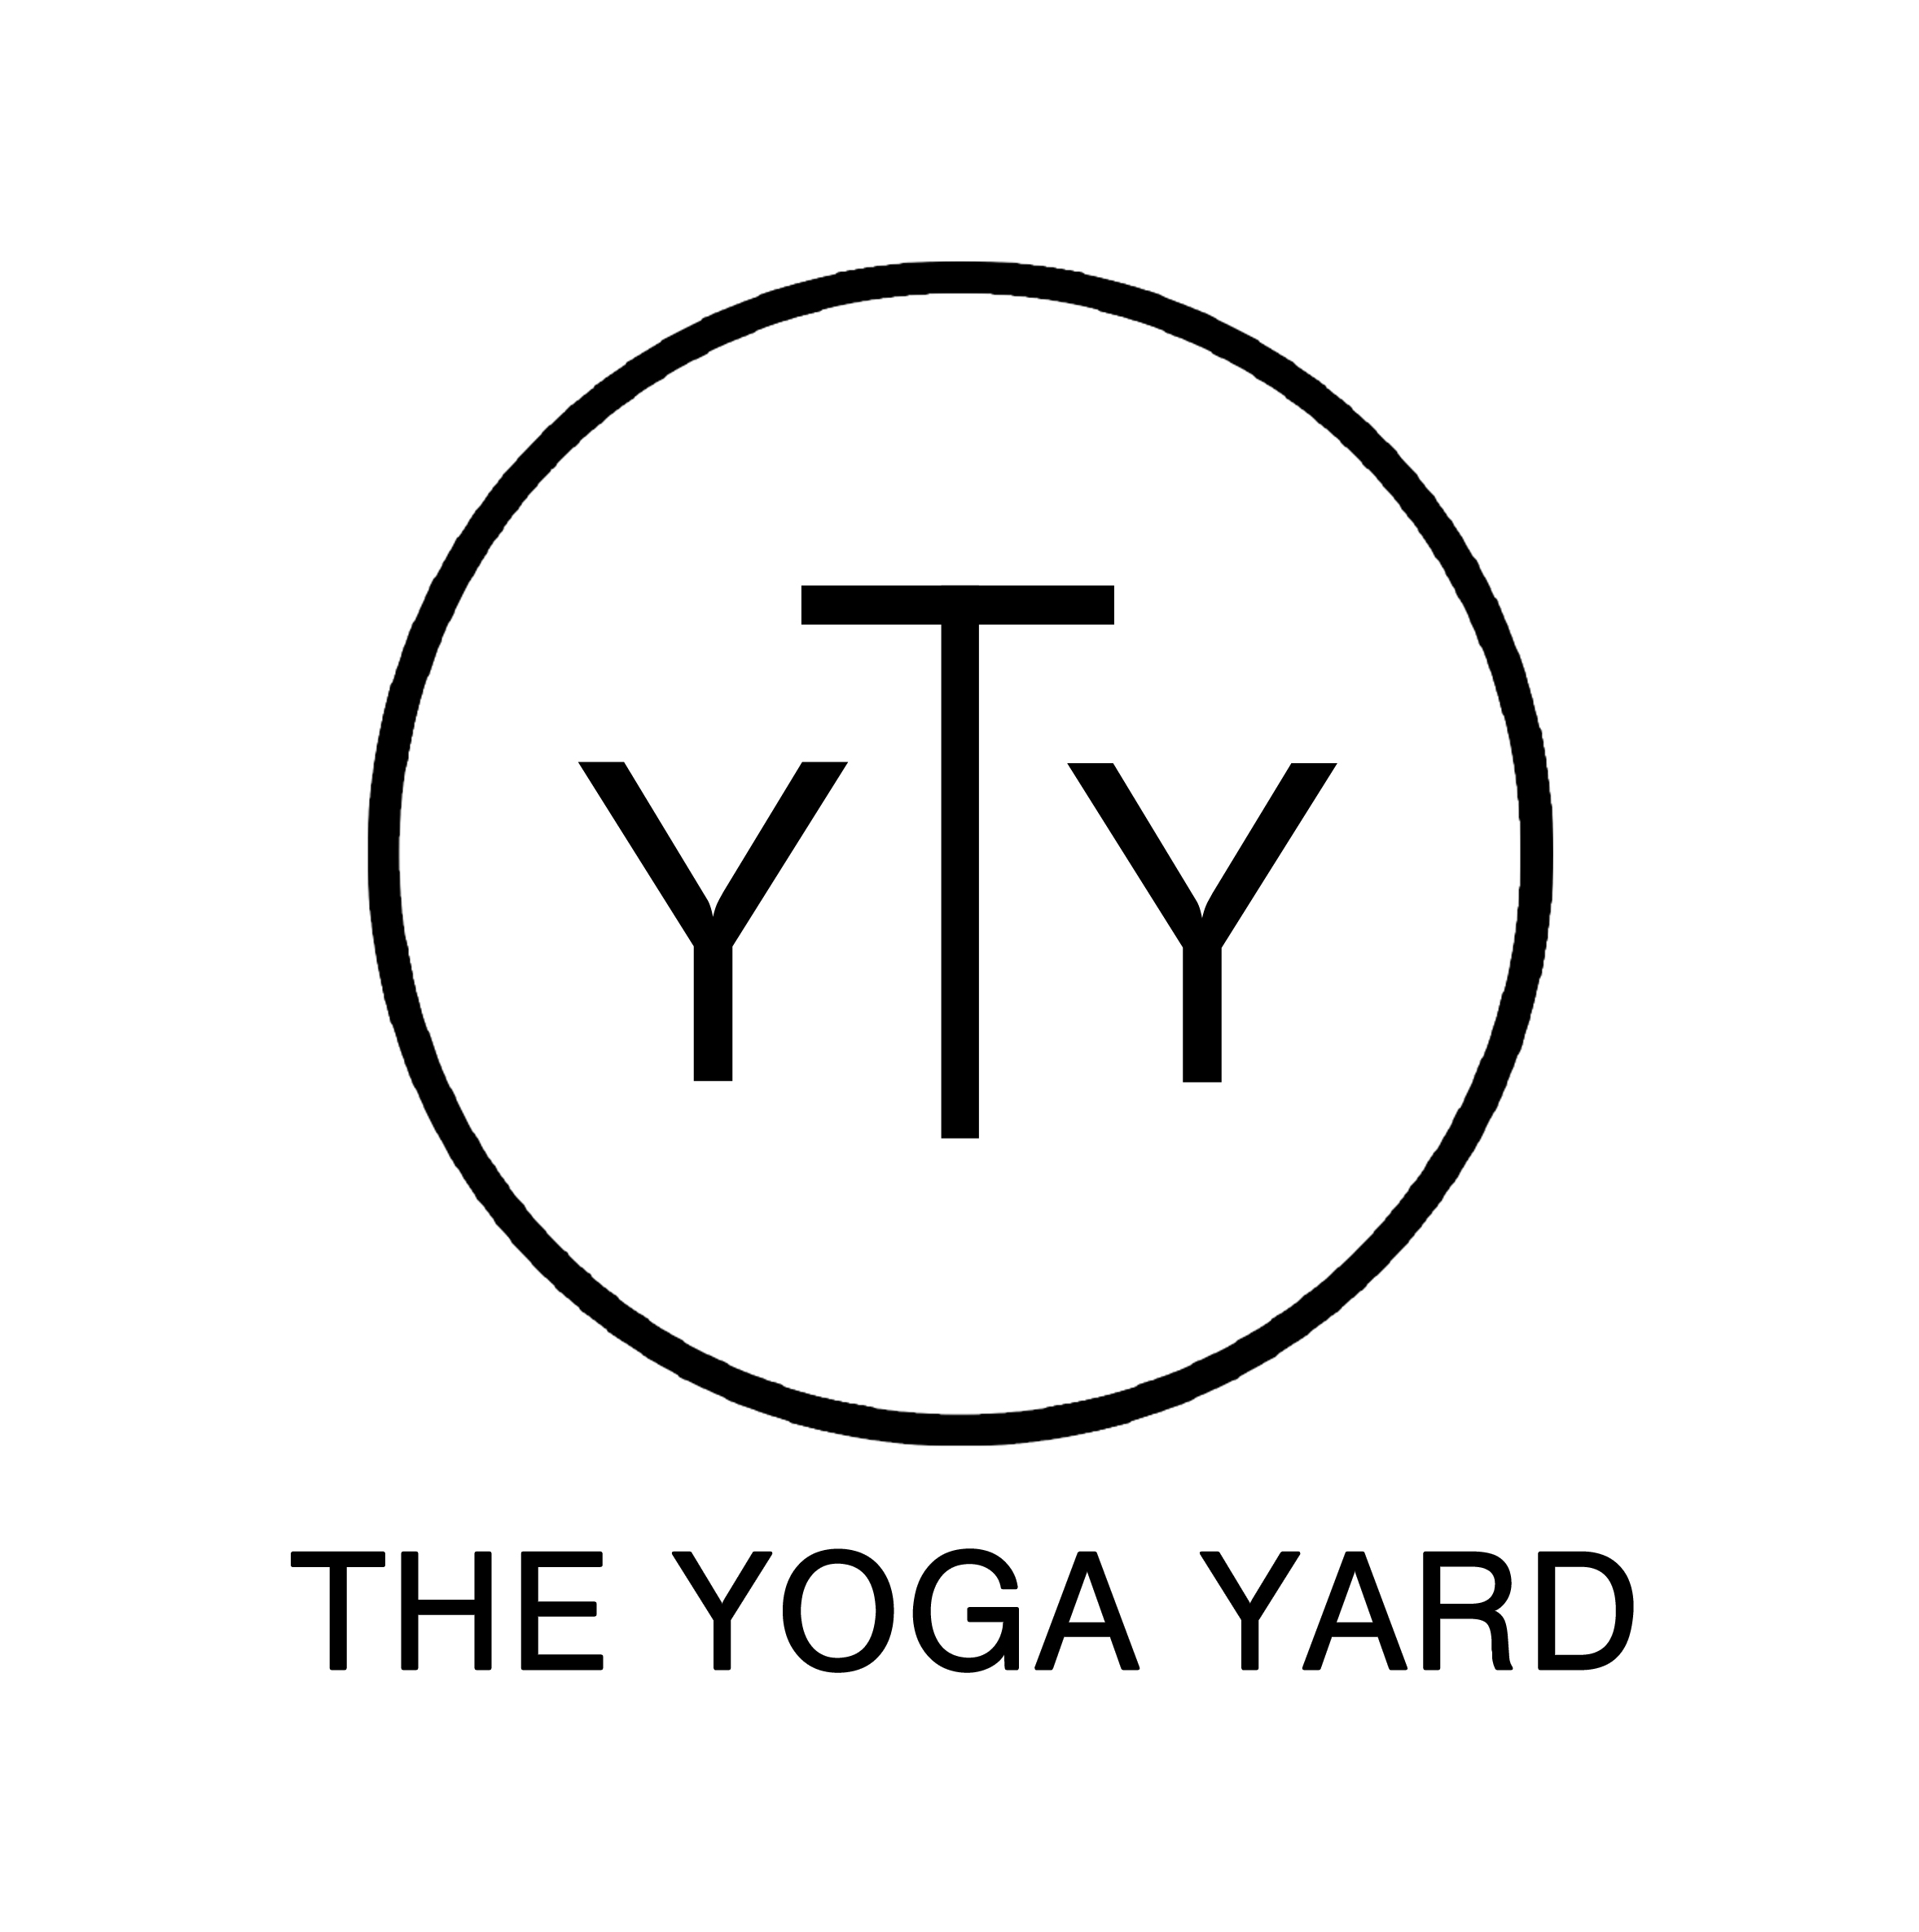 The Yoga Yard